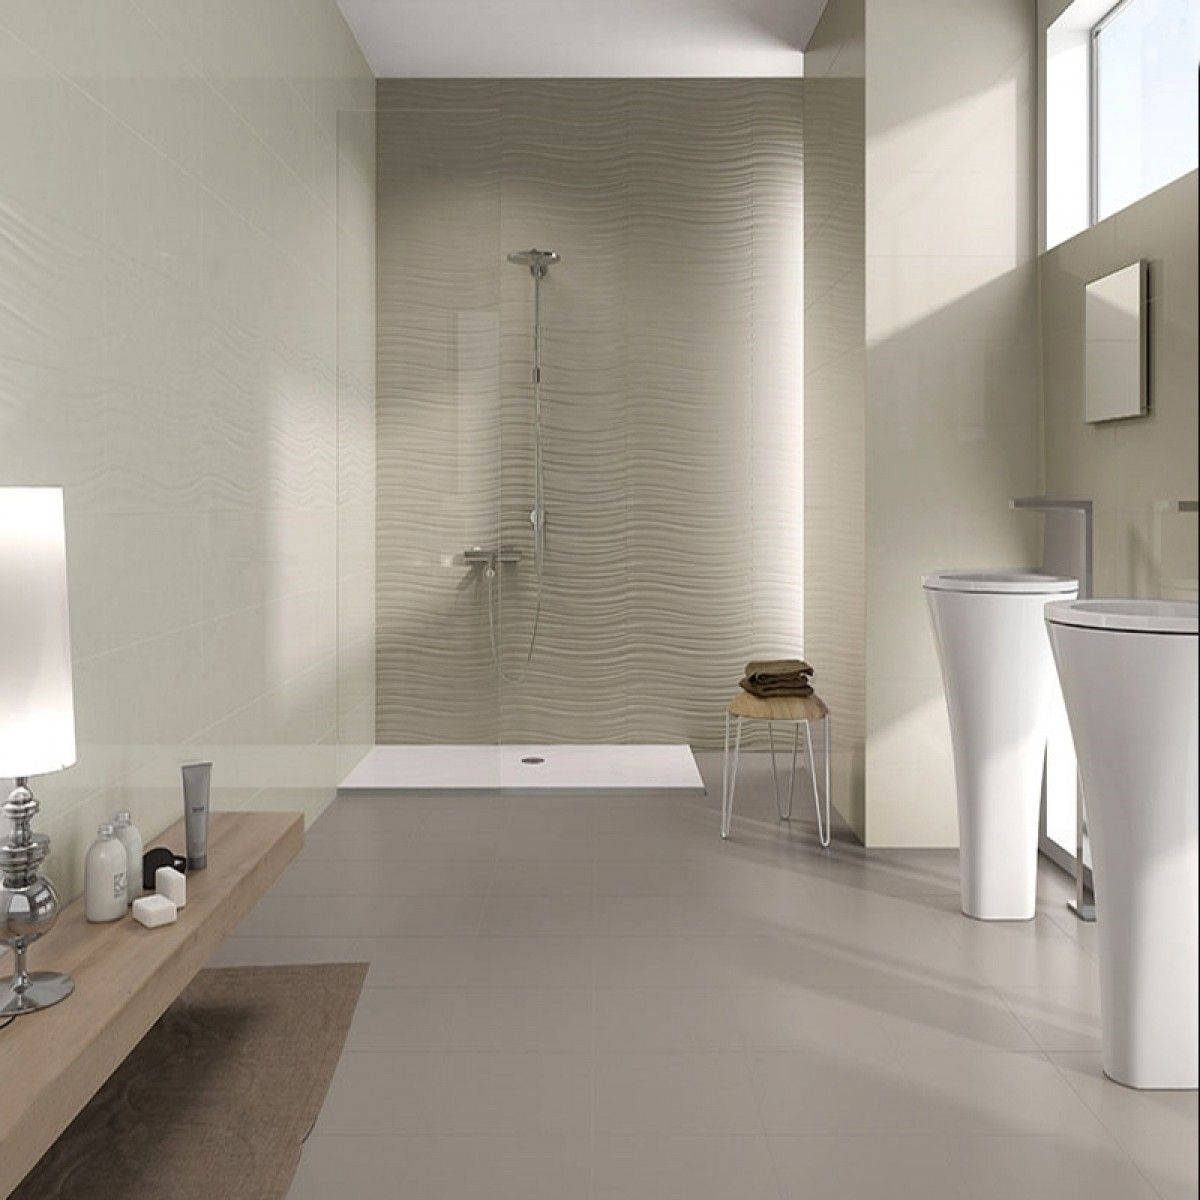 Decorative Wall Tiles For Bathroom Hampton Topoe Waves  600Mm X 250Mm  Decorative Wall Tiles